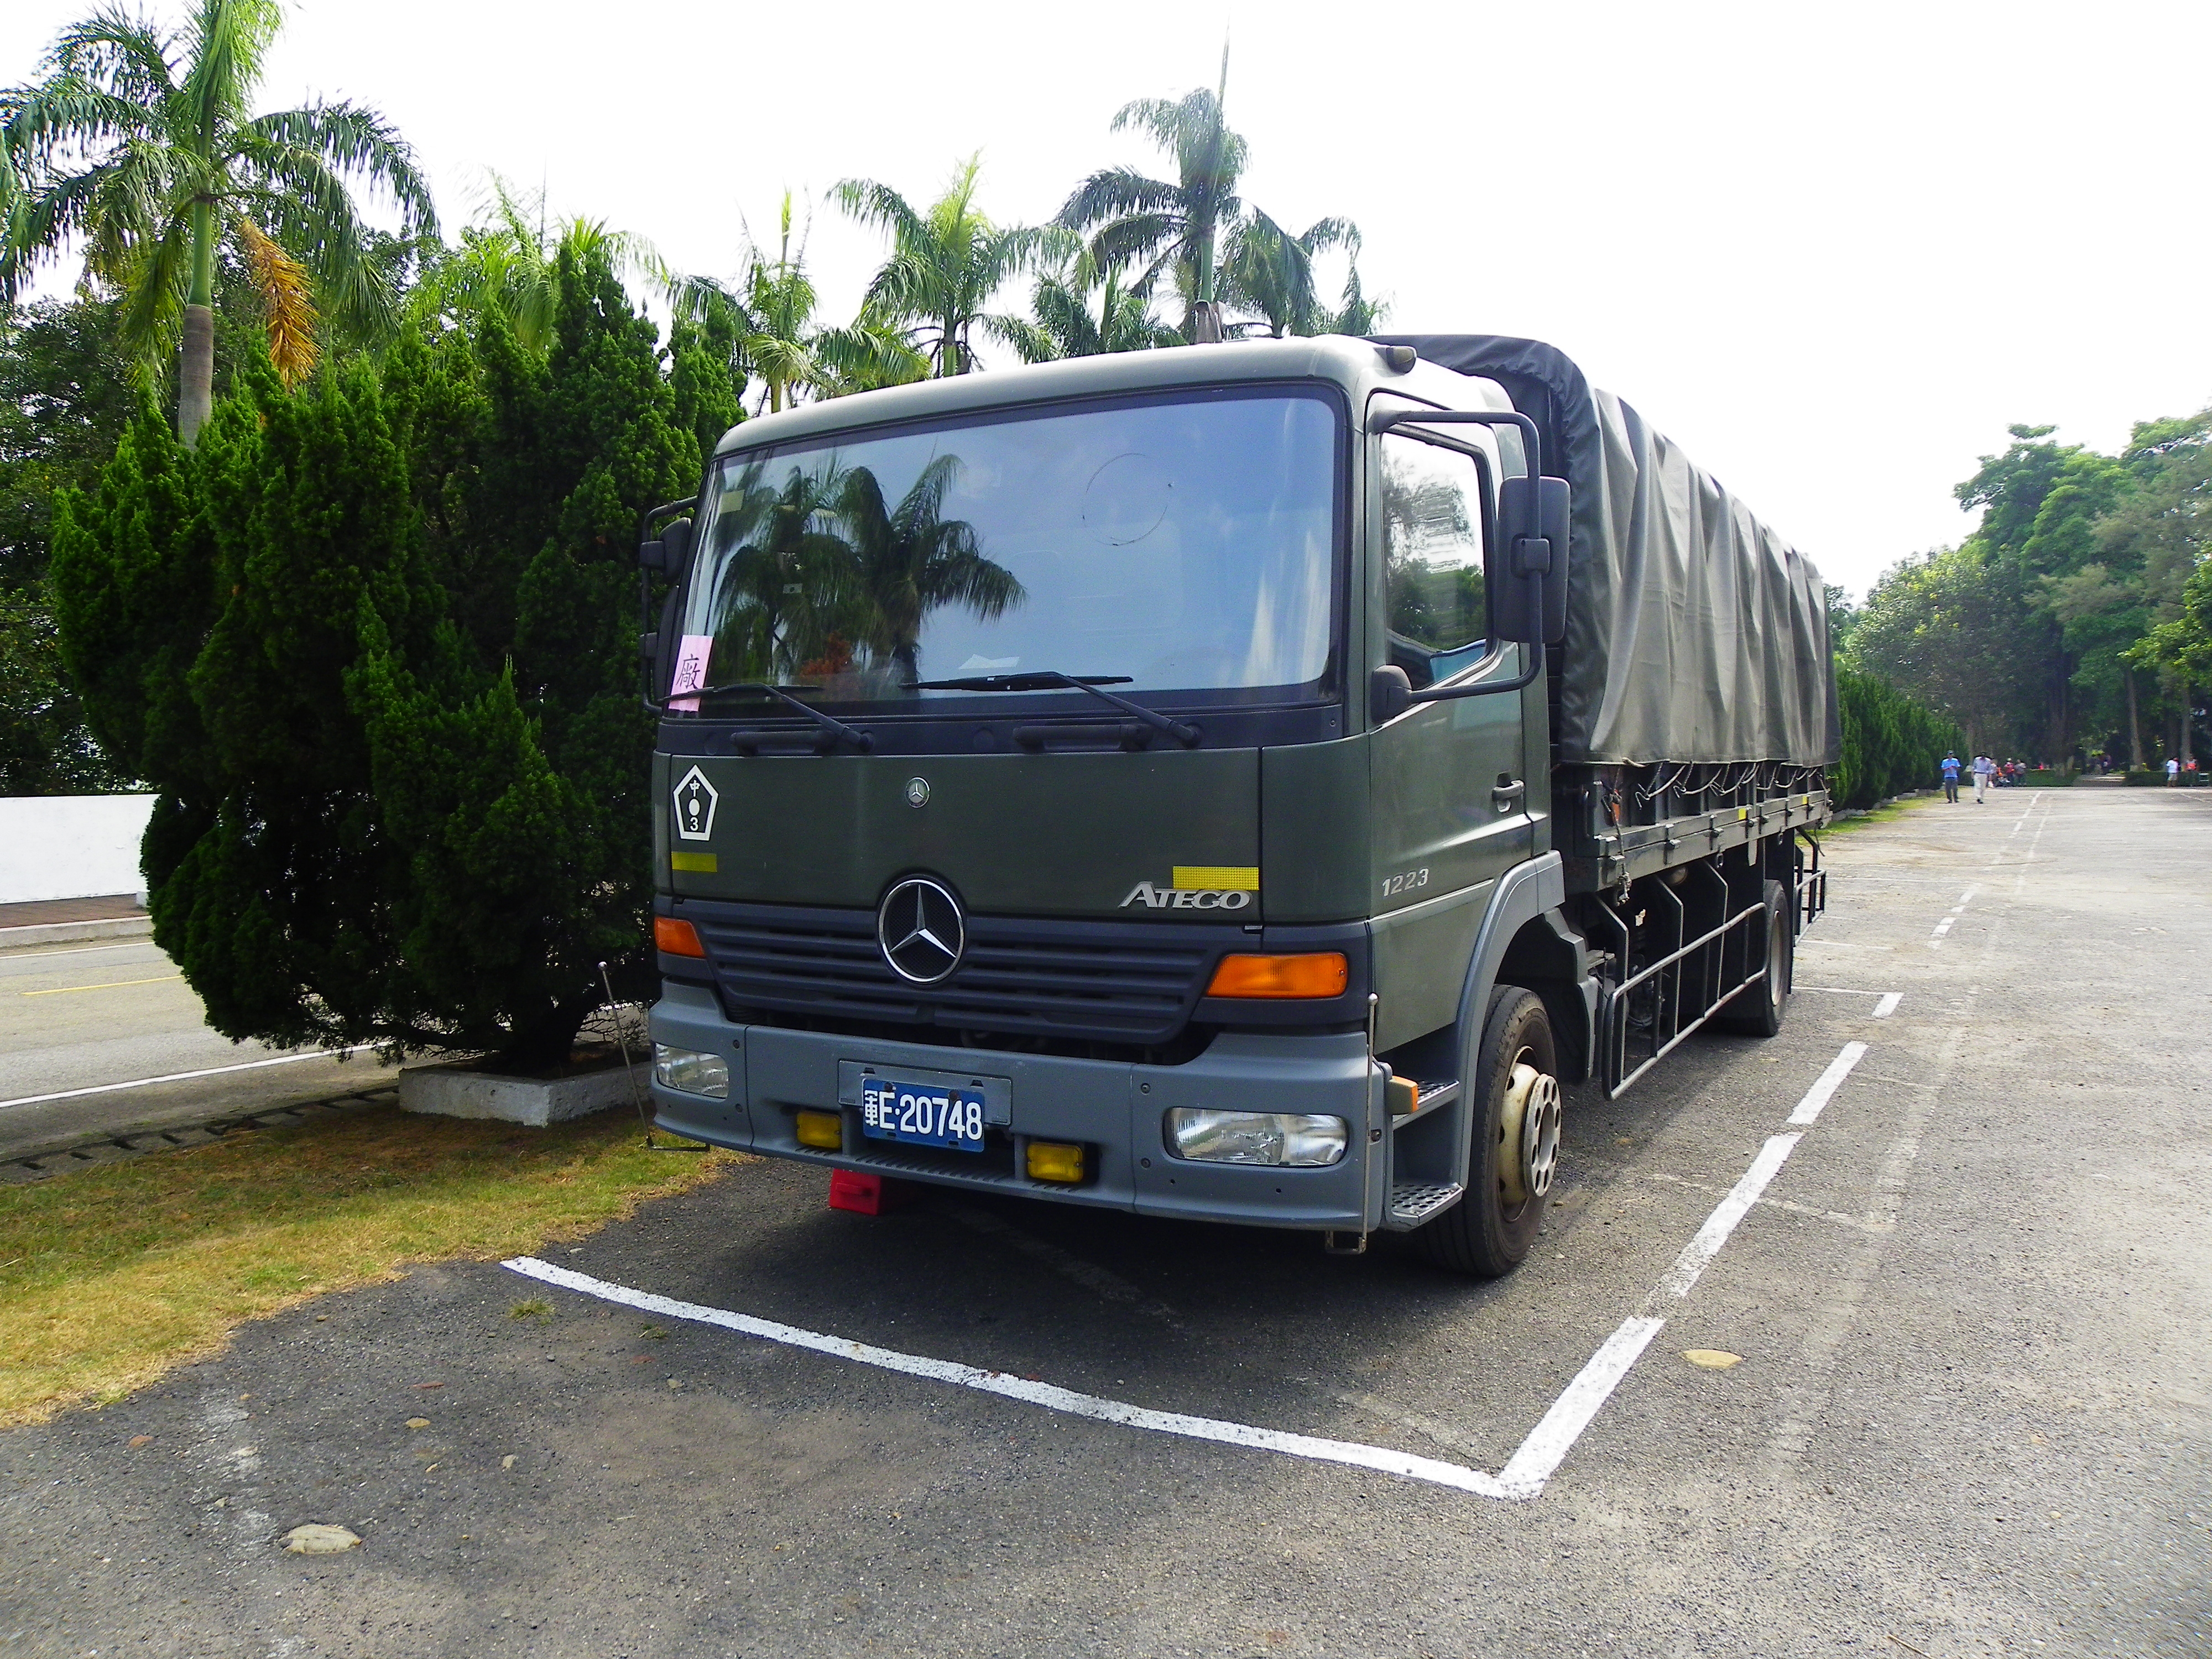 File:ROCA Mercedes-Benz Atego 1223 Truck Parked in Chengkungling ...